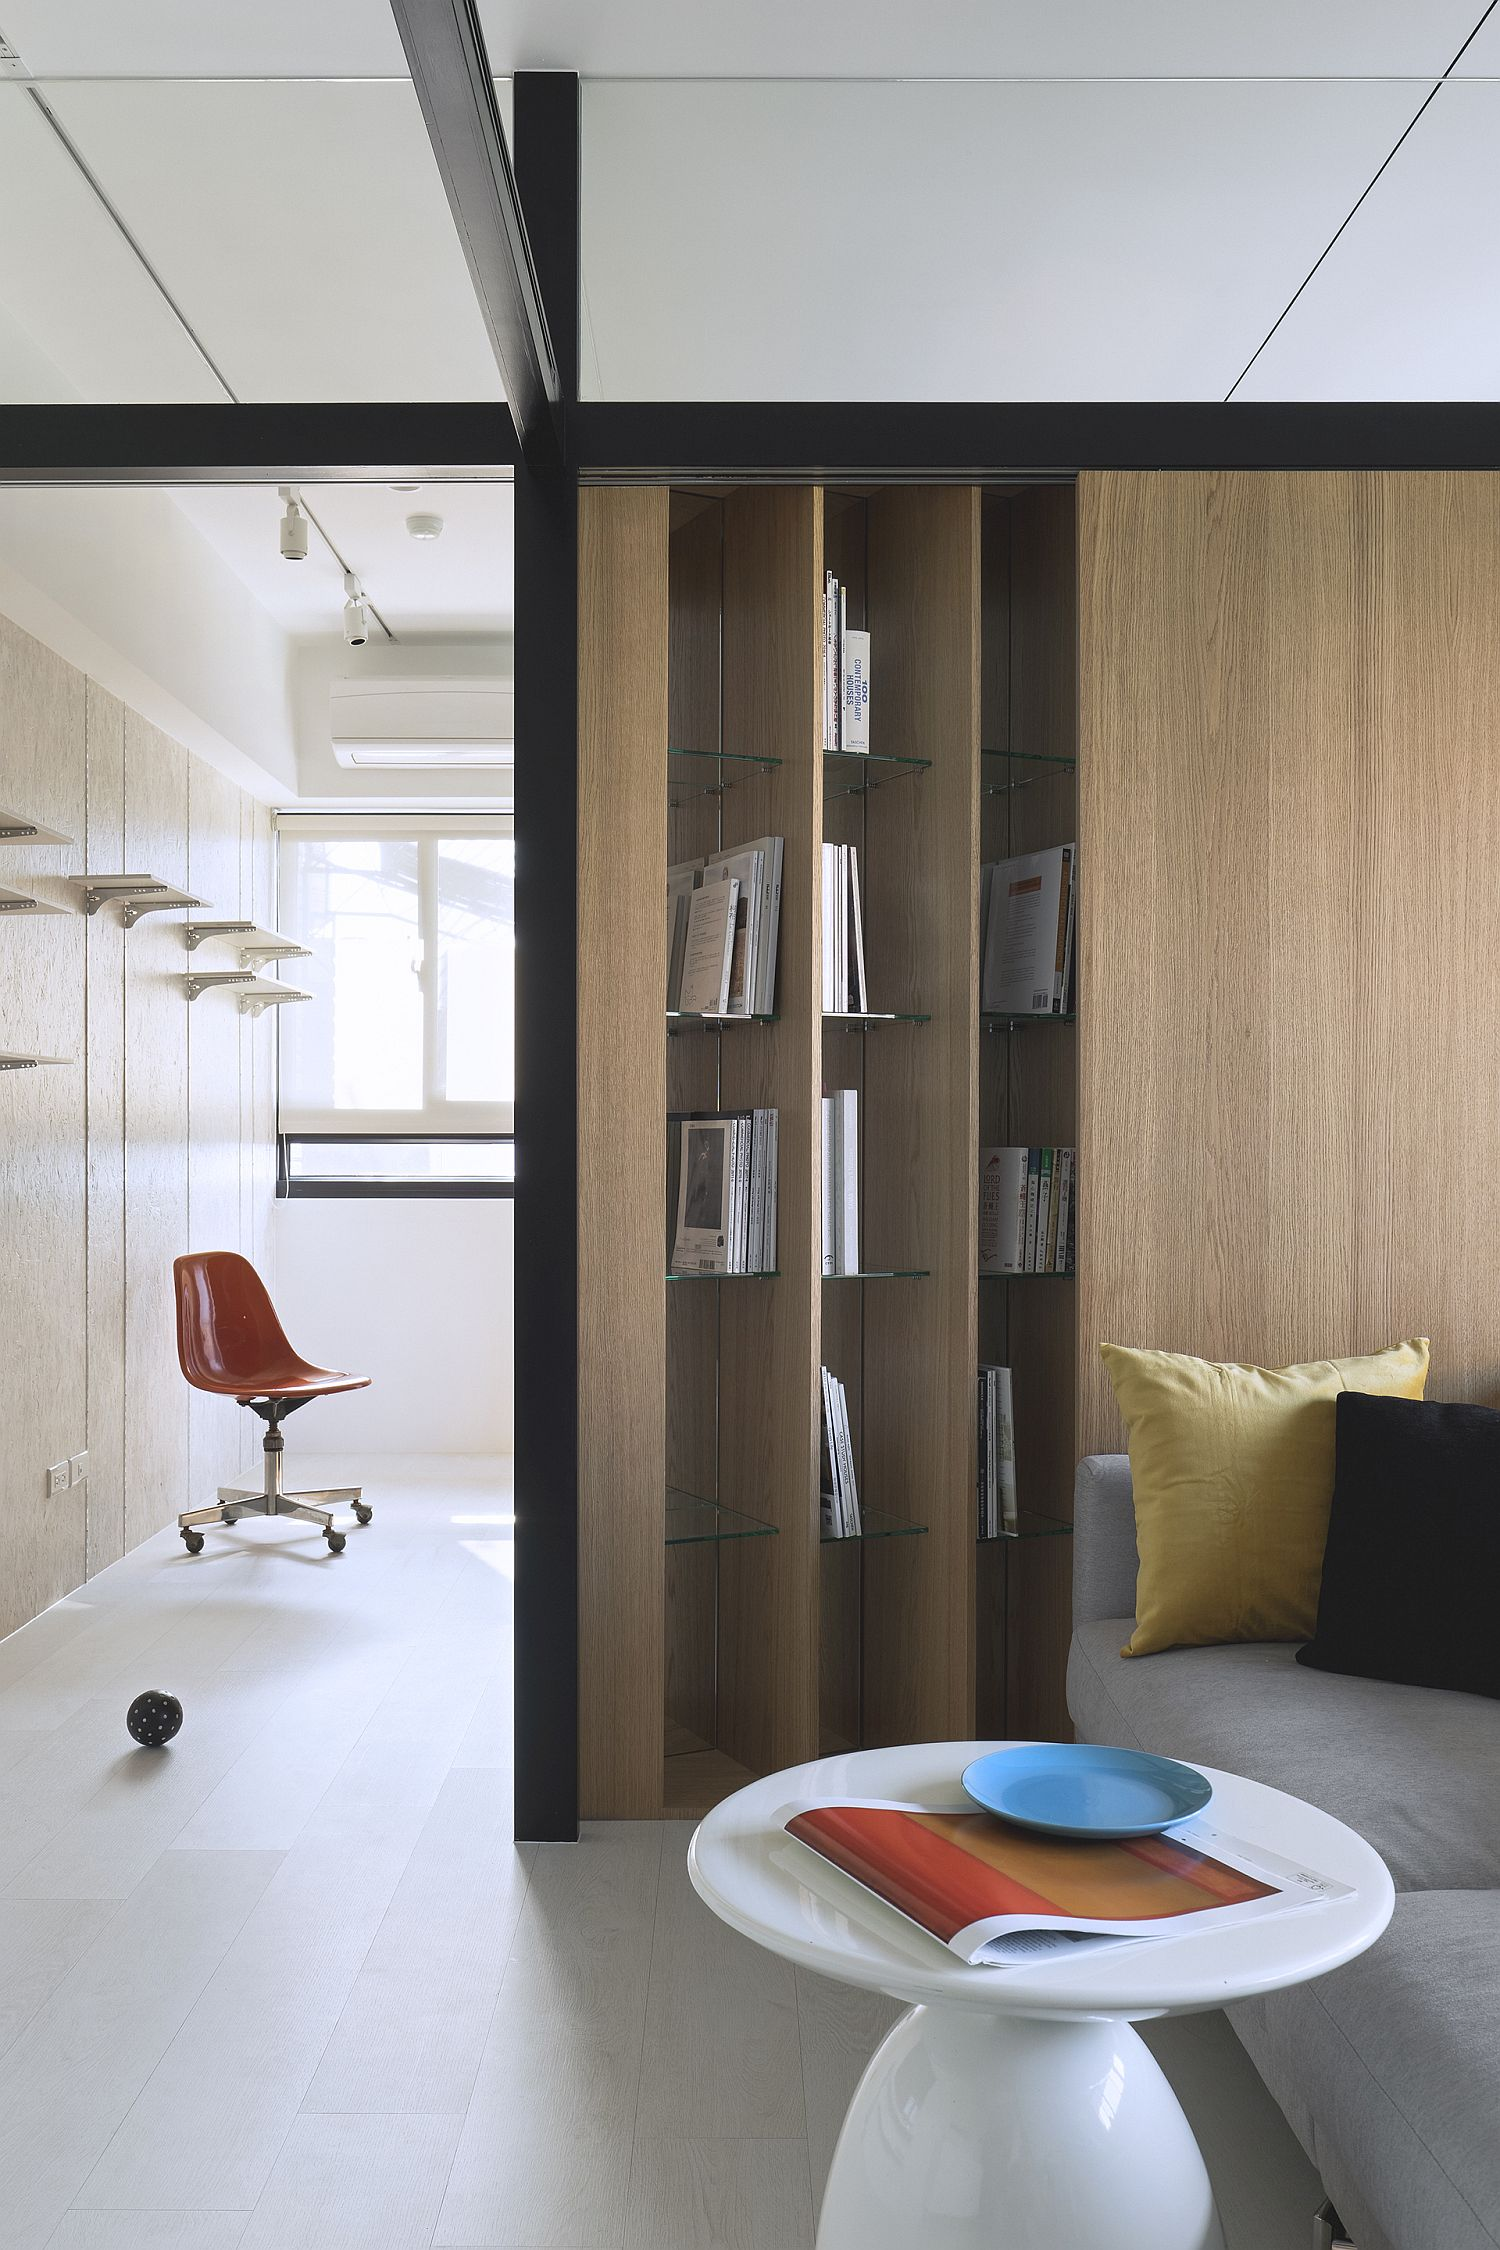 Angled-bookshelf-design-brings-something-unique-to-the-bedroom